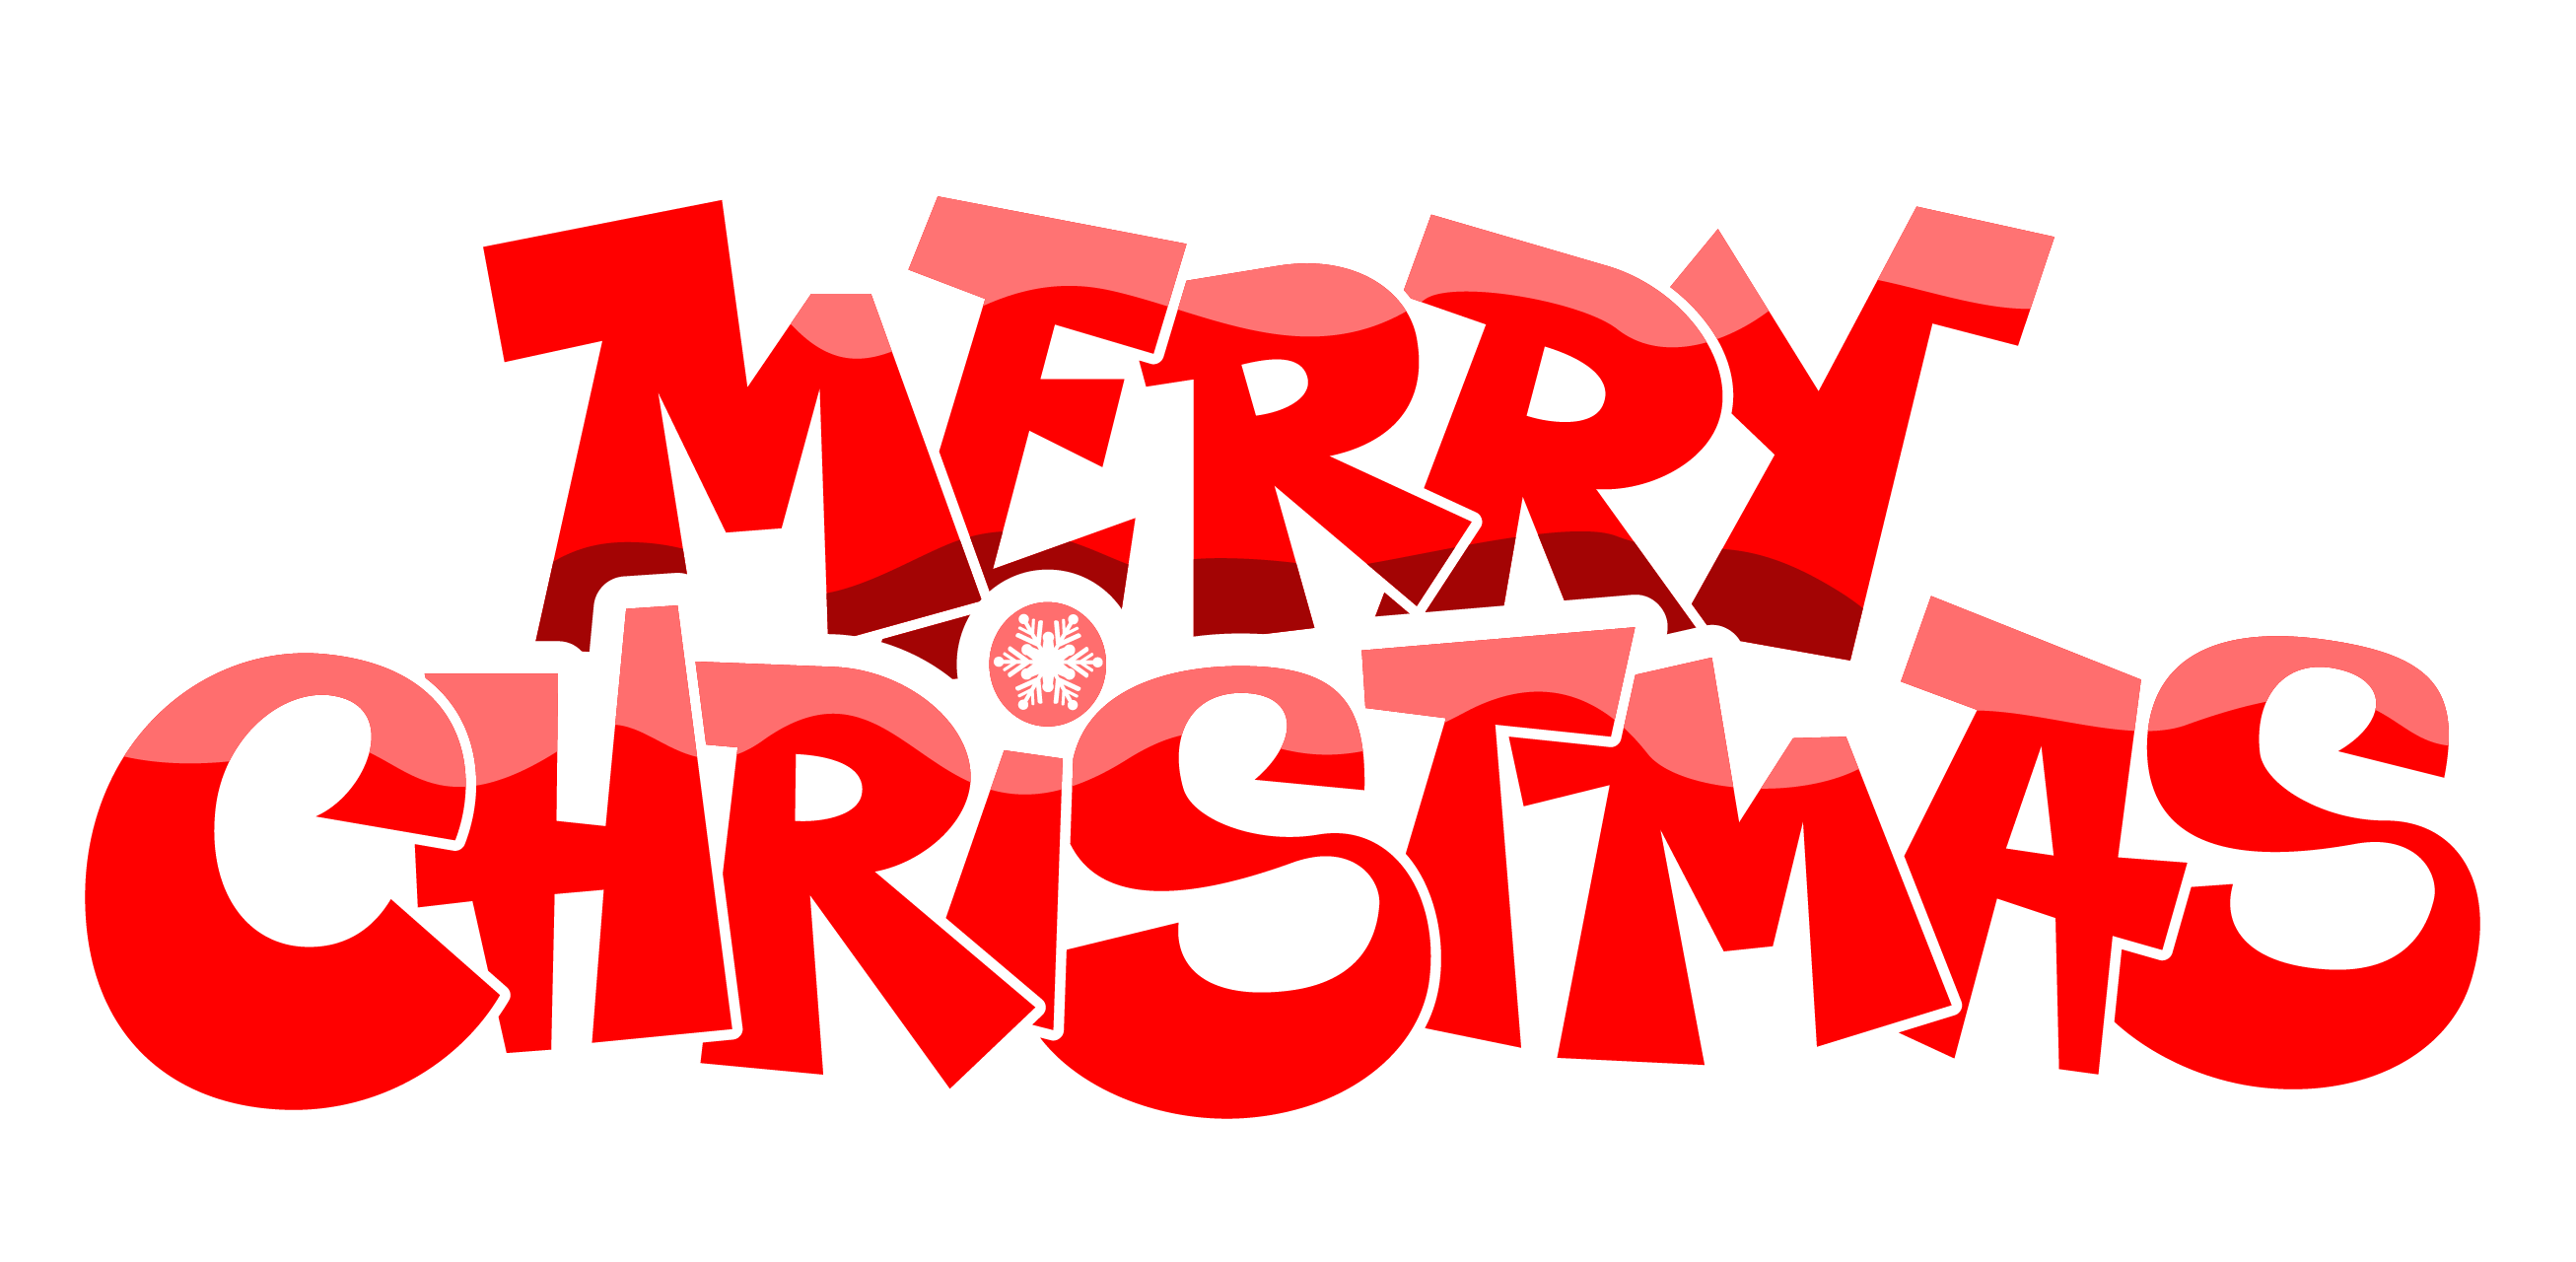 Merry Christmas Clip Art Free - Cliparts.co